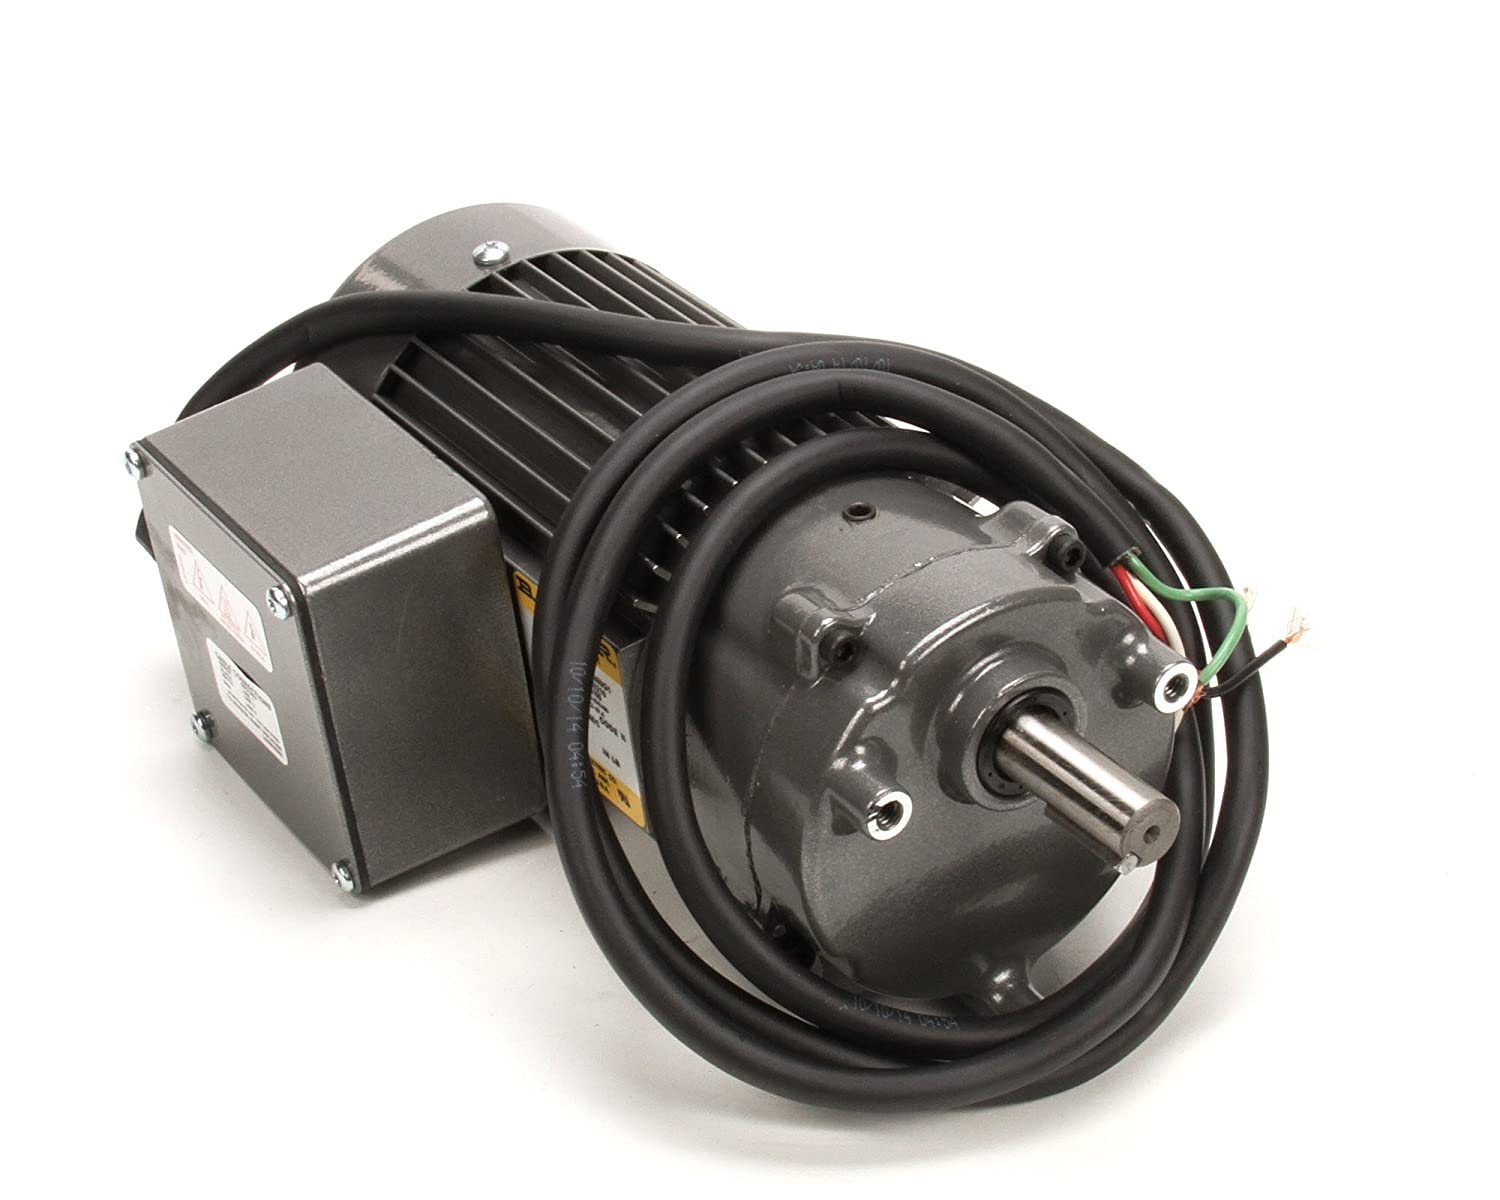 "B00EC8R22U Champion - Moyer Diebel 113732 Gear Motor, 1/6 hp, Multi-Volt, 17"" Height, 11"" Width, 8"" Length 718AcNs0n5L._SL1500_"